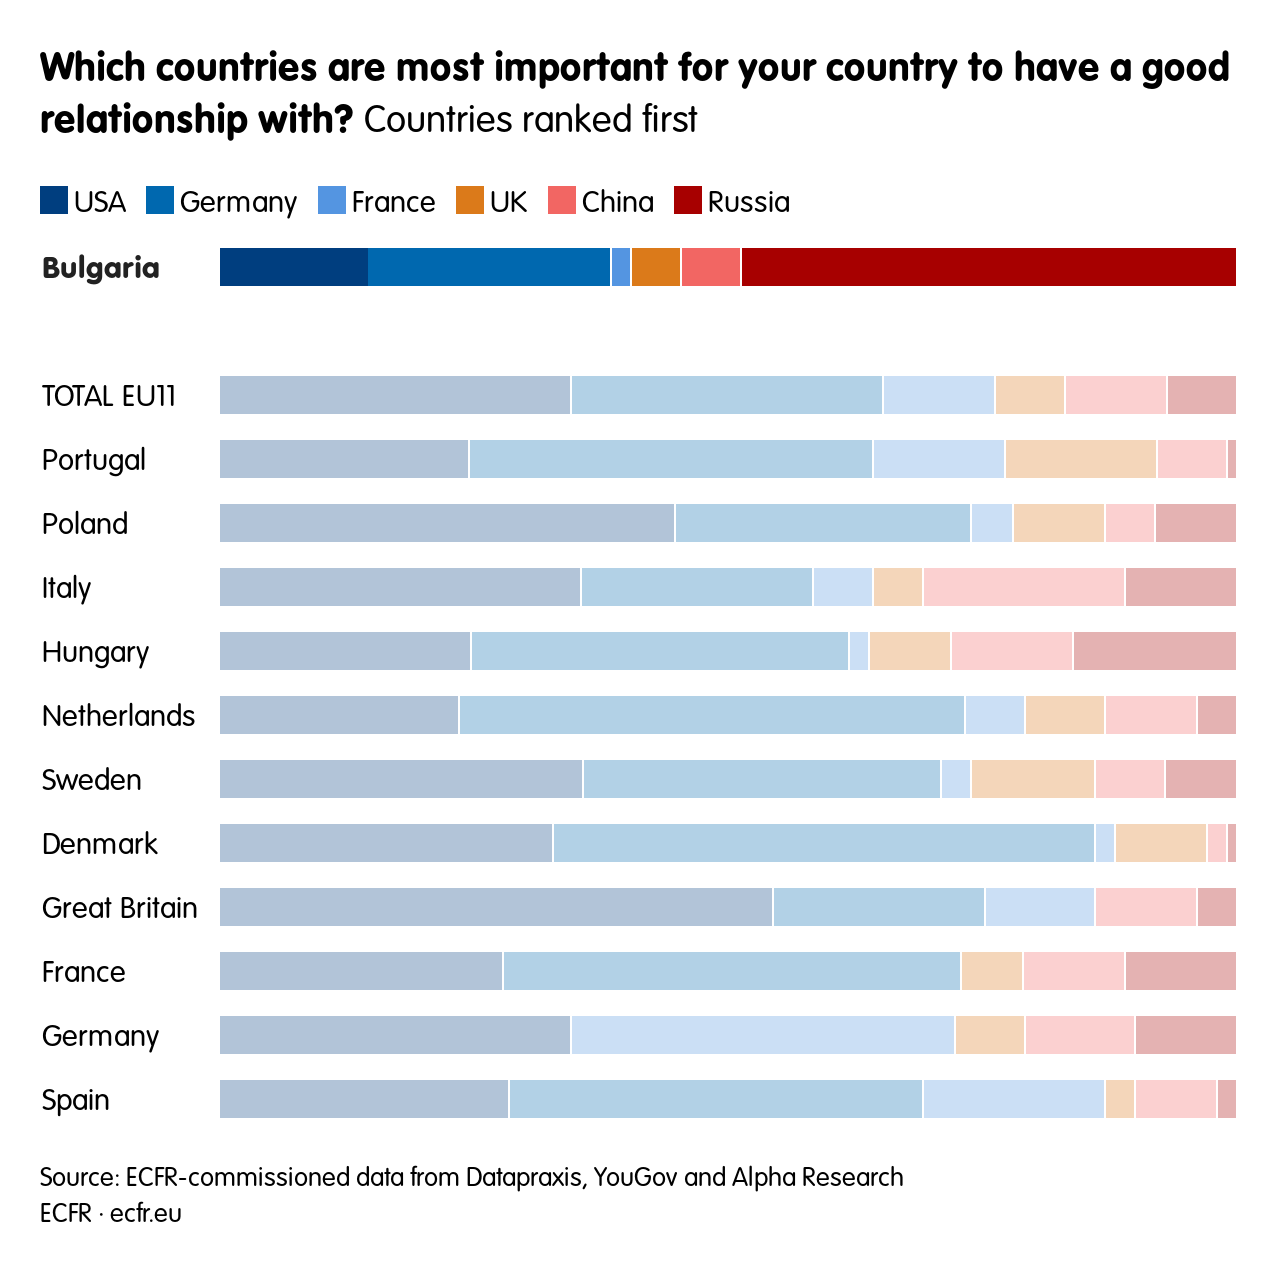 Which countries are most important for your country to have a good relationship with?